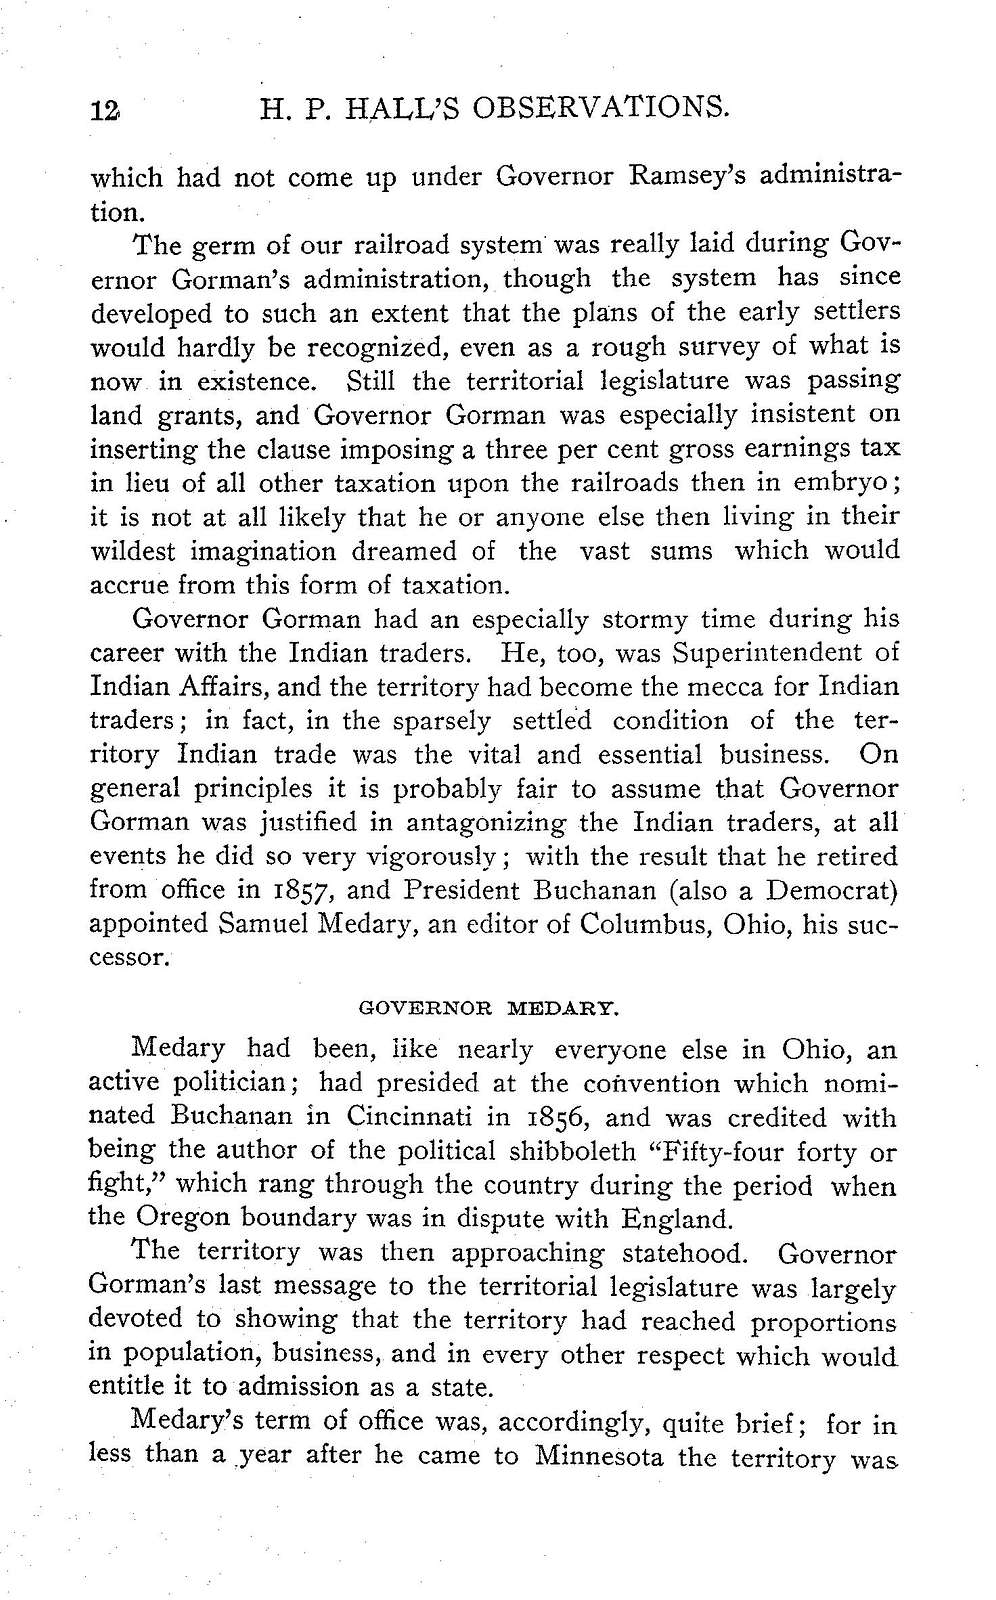 H. P. Hall's observations; being more or less a history of political contests in Minnesota from 1849 to 1904